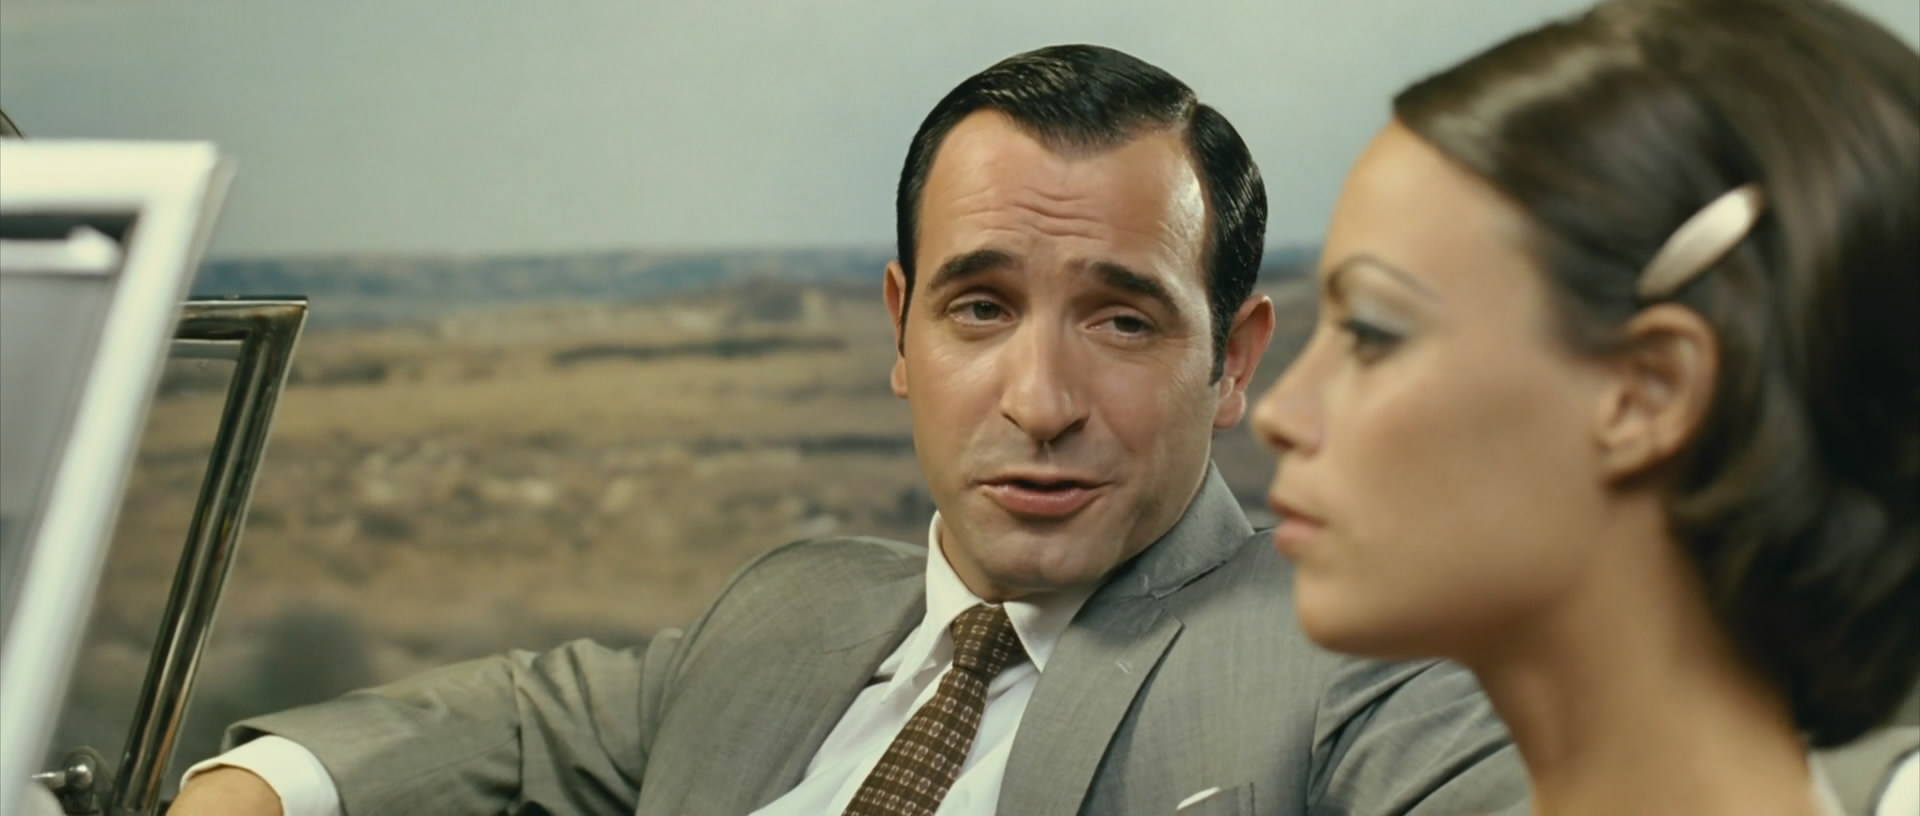 Oss 117 cairo nest of thieves 4 stars keith the for Jean dujardin religion